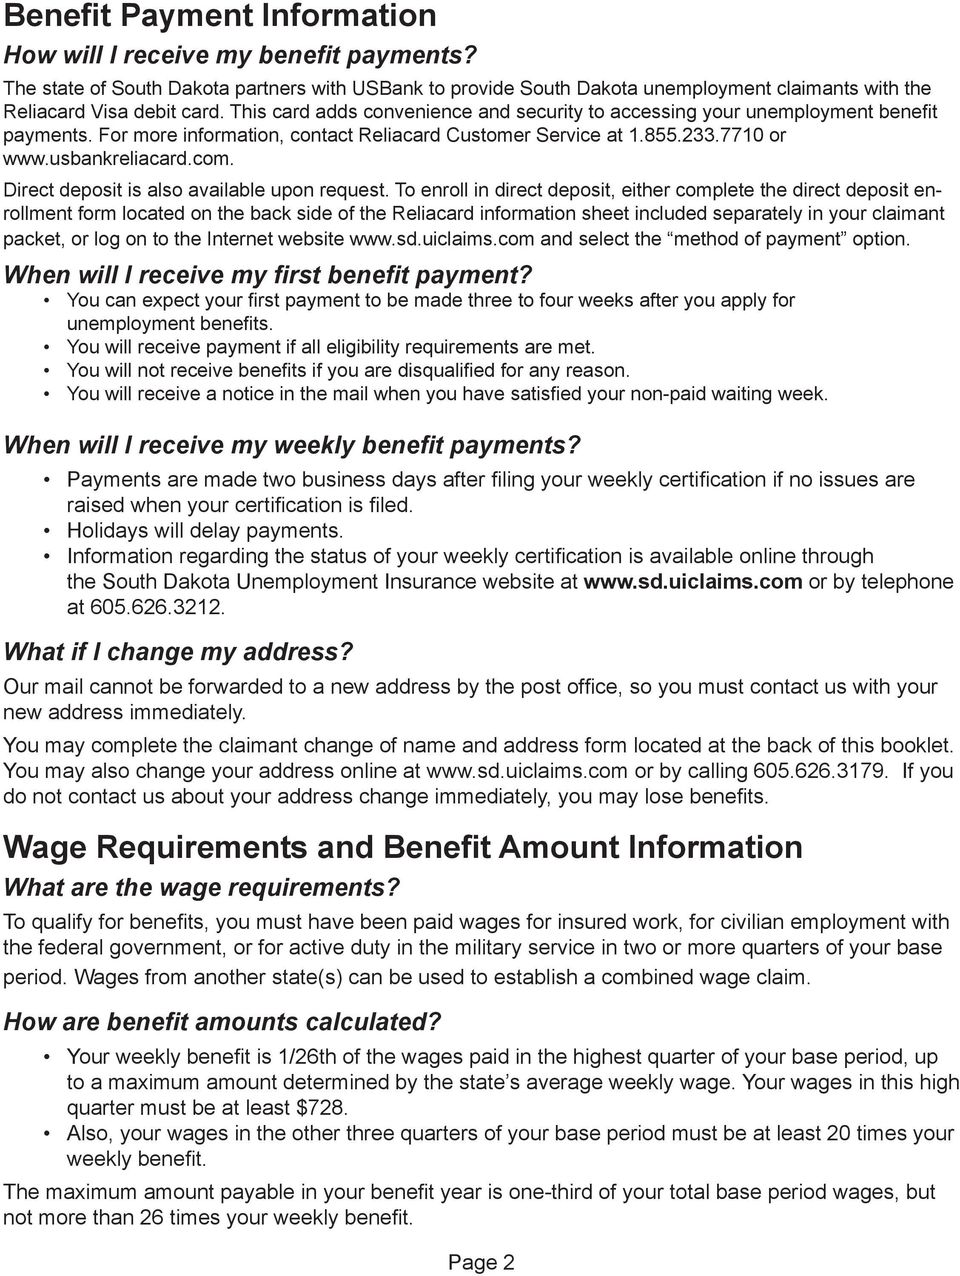 Facts About Unemployment Insurance Benefits Pdf